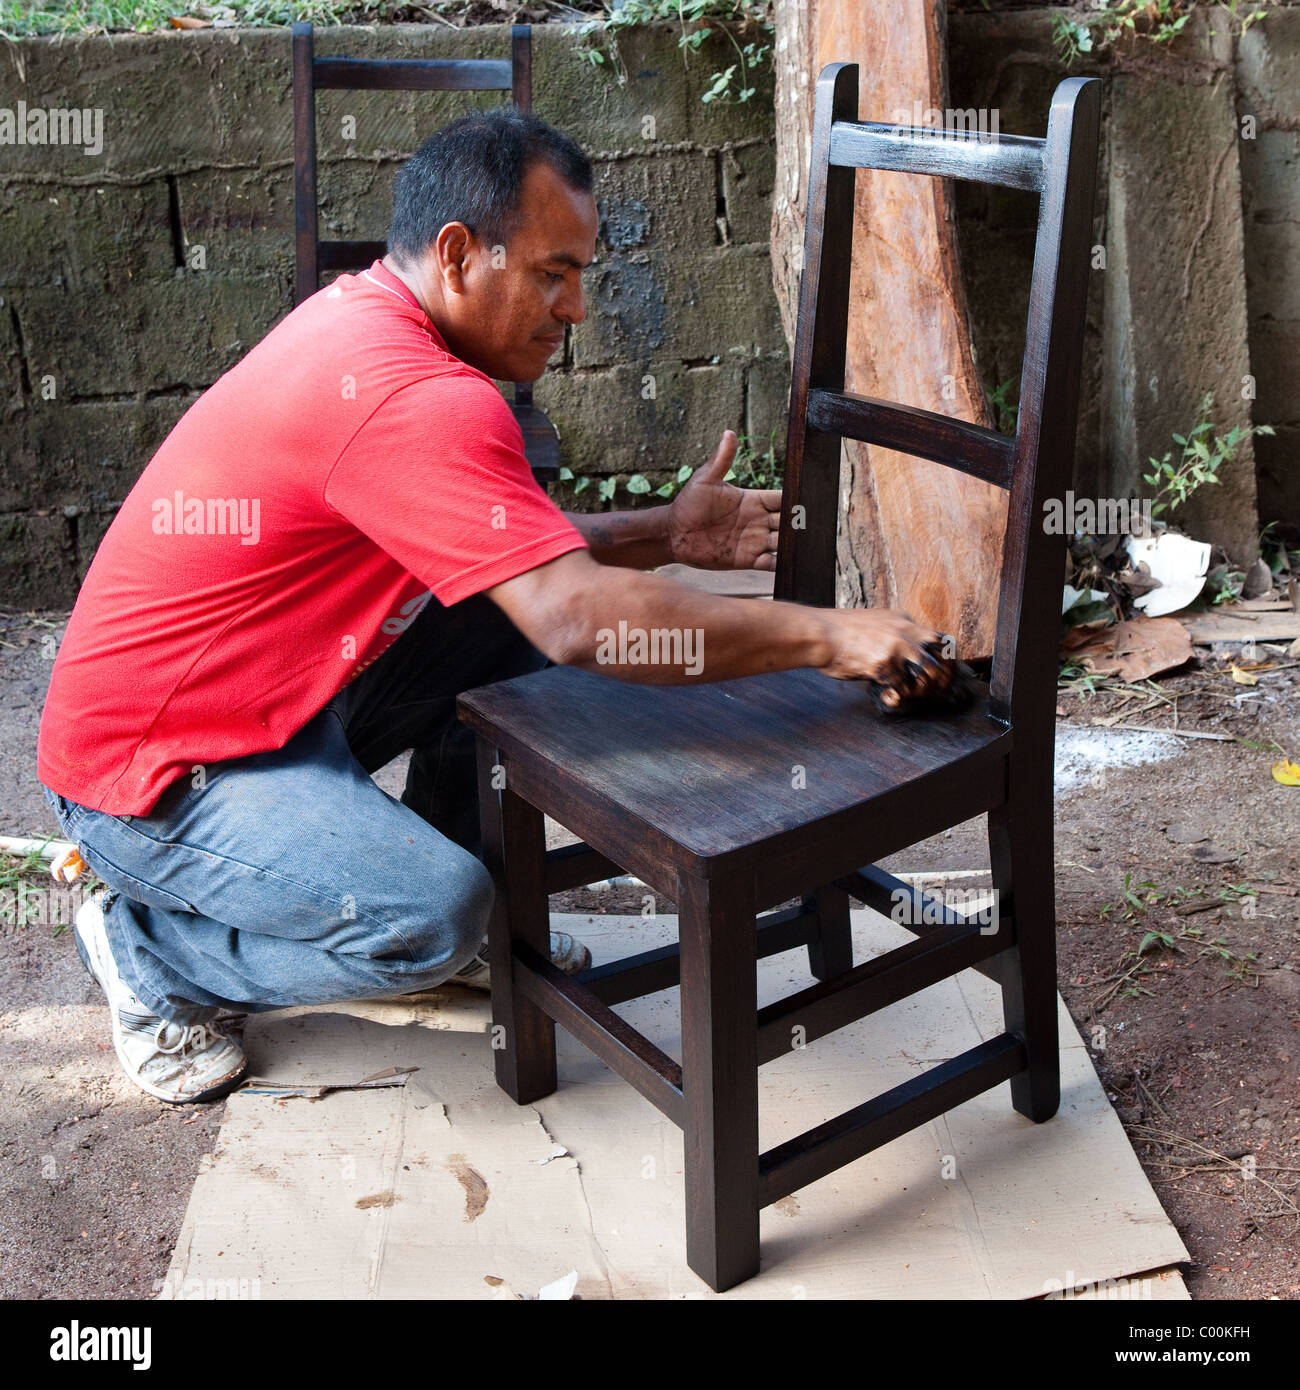 Furniture maker creating handmade chair in Penonome, Cocle province, Republic of Panama. - Stock Image